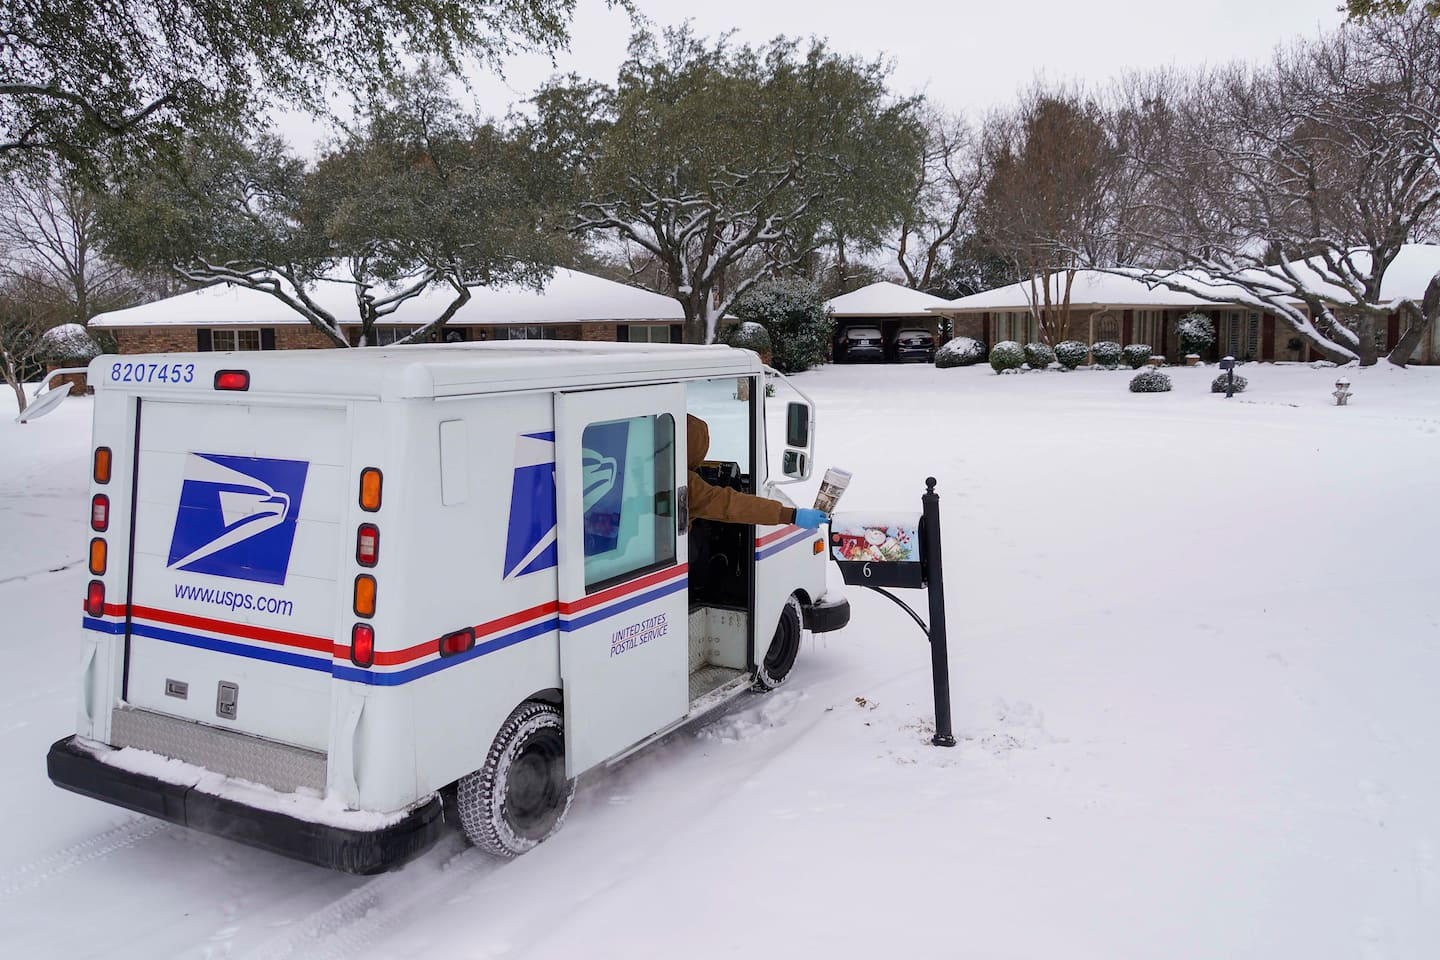 As USPS delays persist, bills, paychecks and medications are getting stuck in the mail